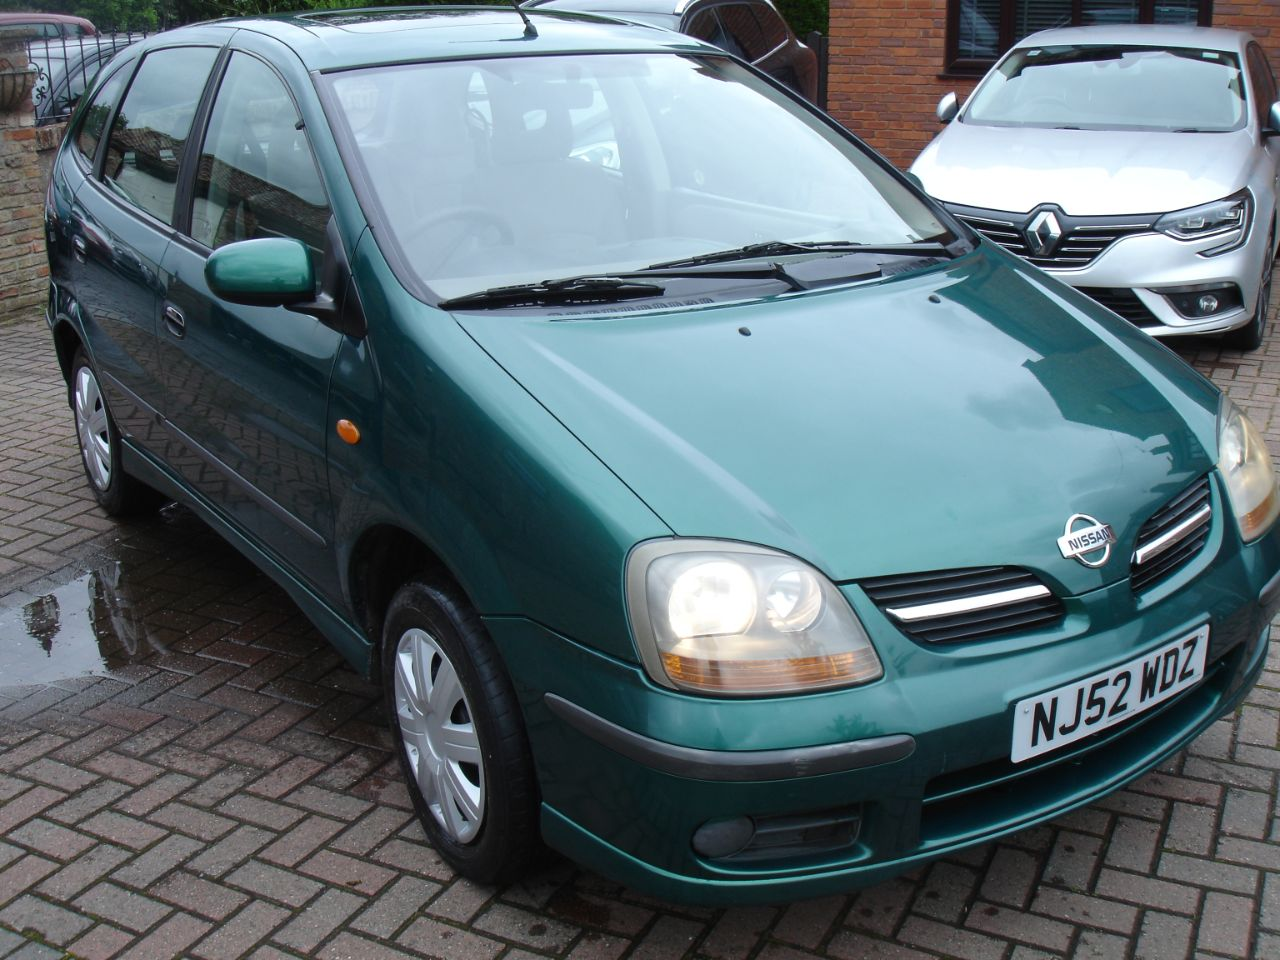 Nissan Almera Tino 1.8 SE 5dr Estate Petrol Metallic Green at Level Pitch Selby